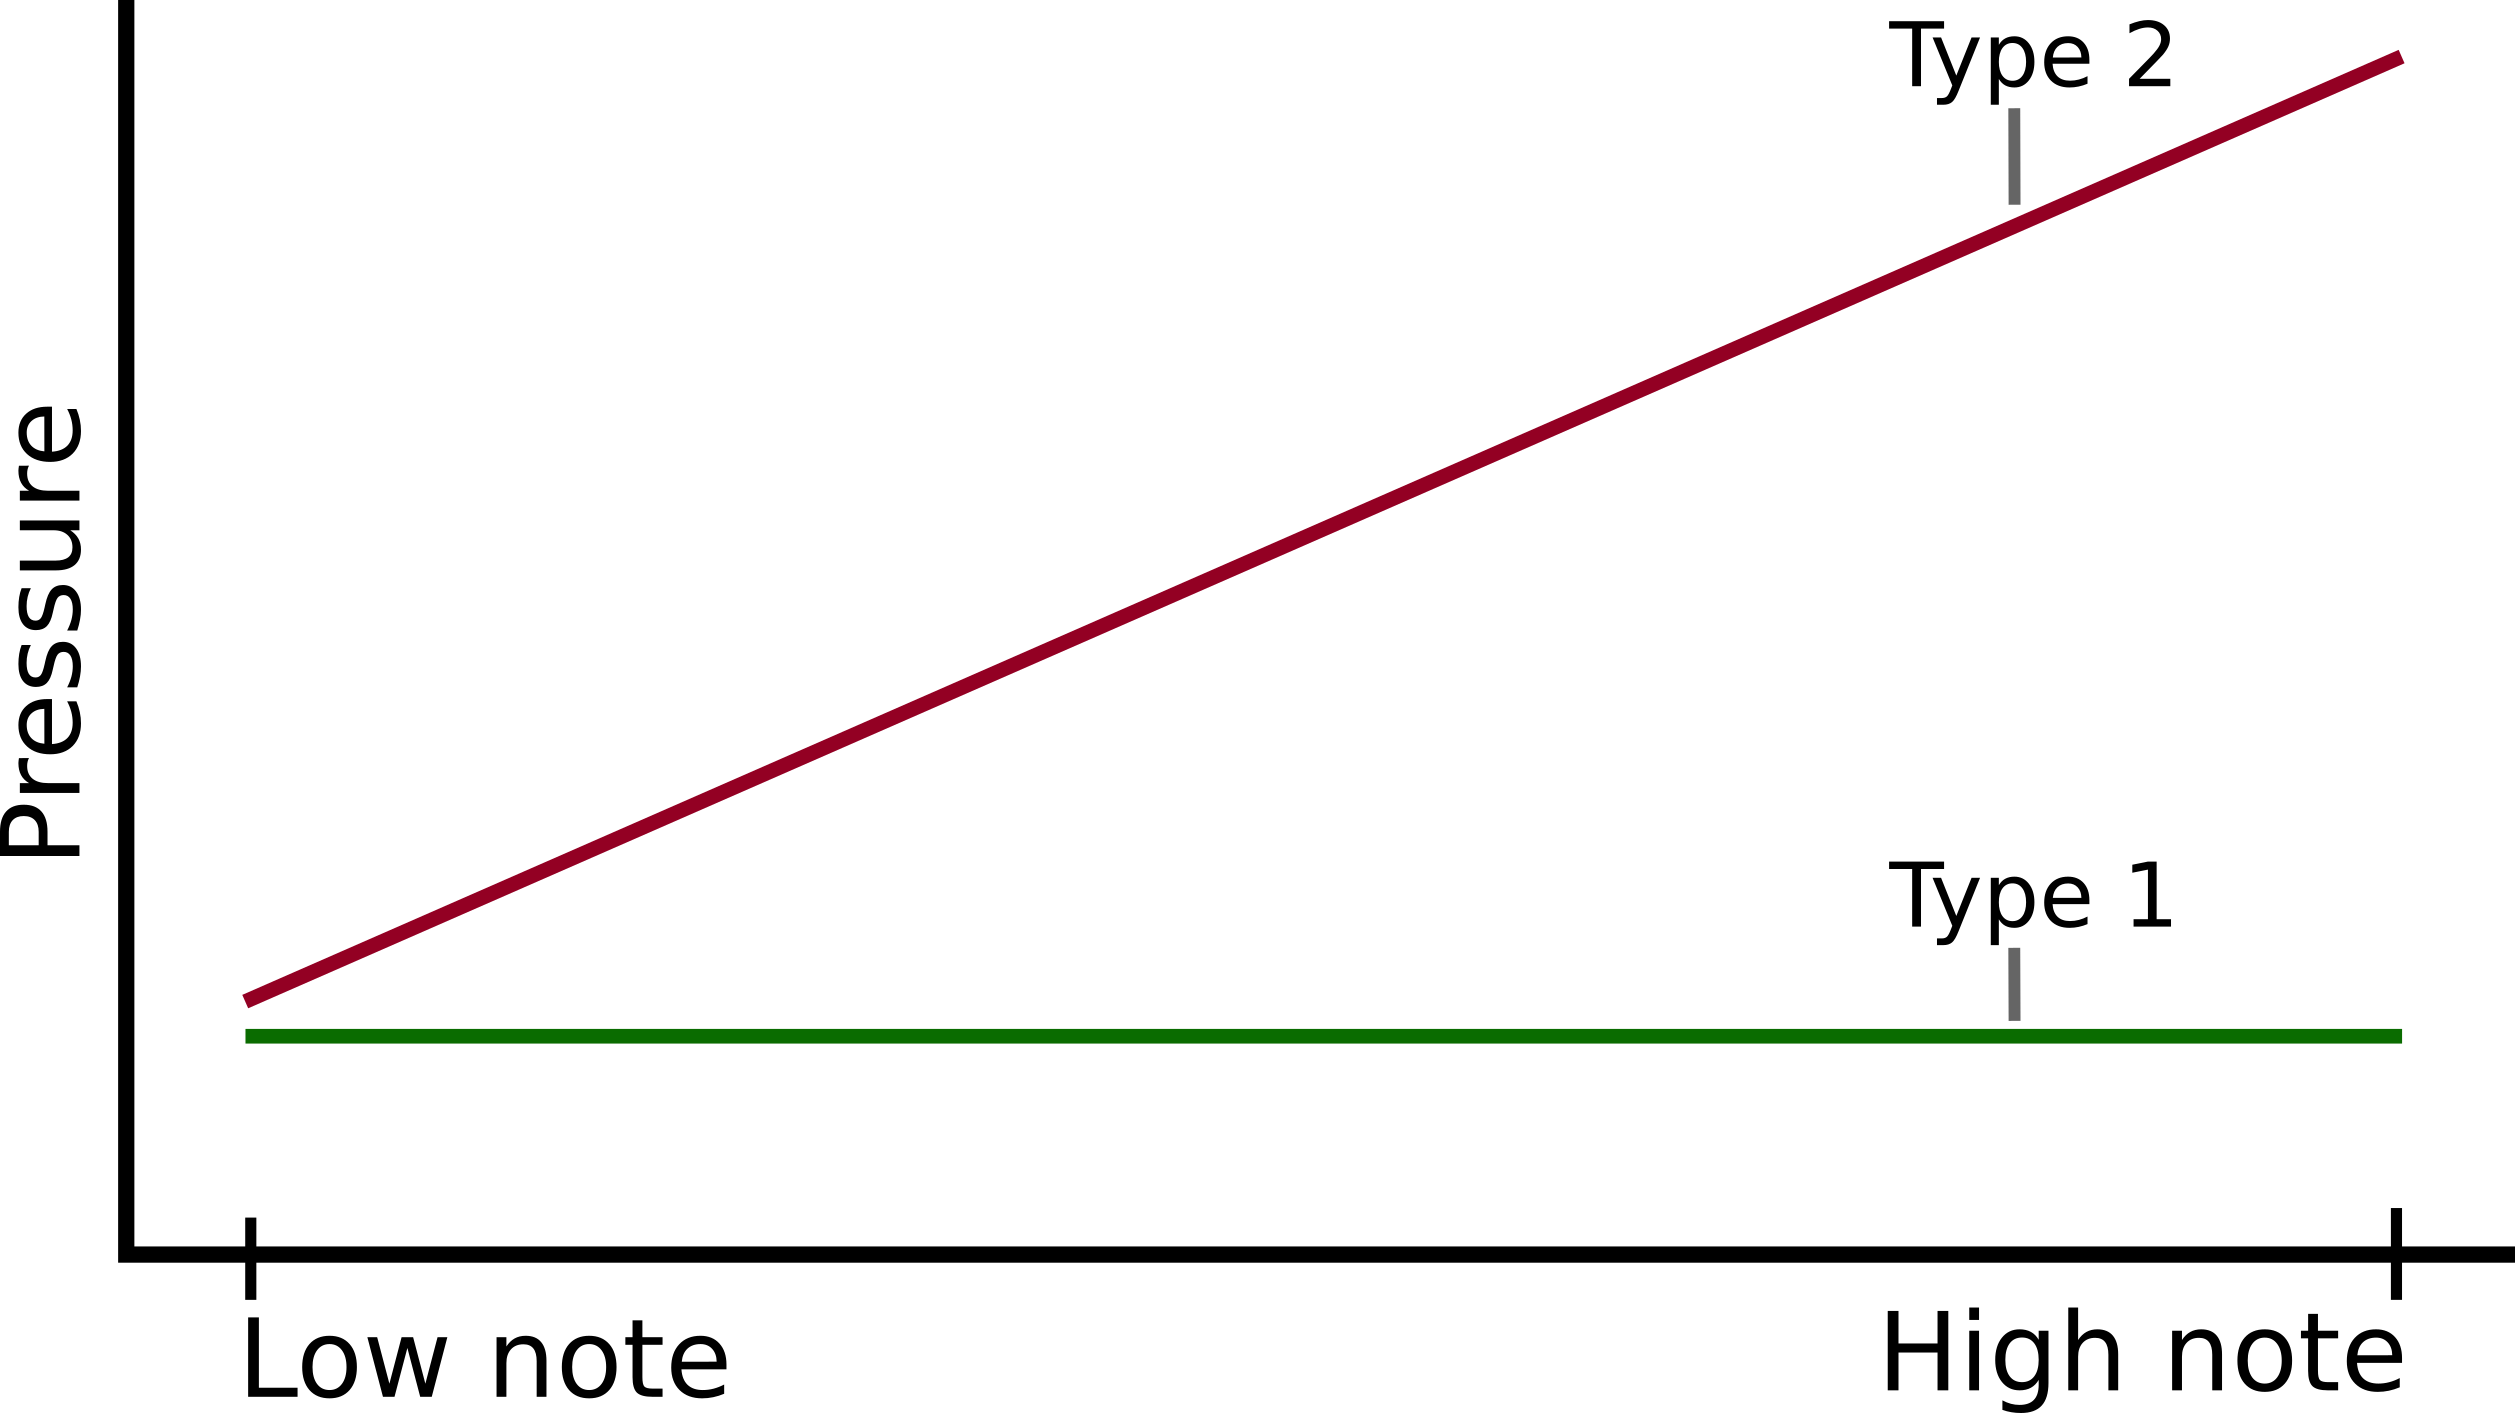 An oversimplification of ocarina breath curves is to classify them as 'type 1' and 'type 2', where type 1 is a constant pressure and type 2 increasing. In reality this distinction does not exist, and an ocarina with a completely flat pressure curve would have very poor high notes. A range of pressure curves exist, from shallow to steep, but there is always some increase over the range